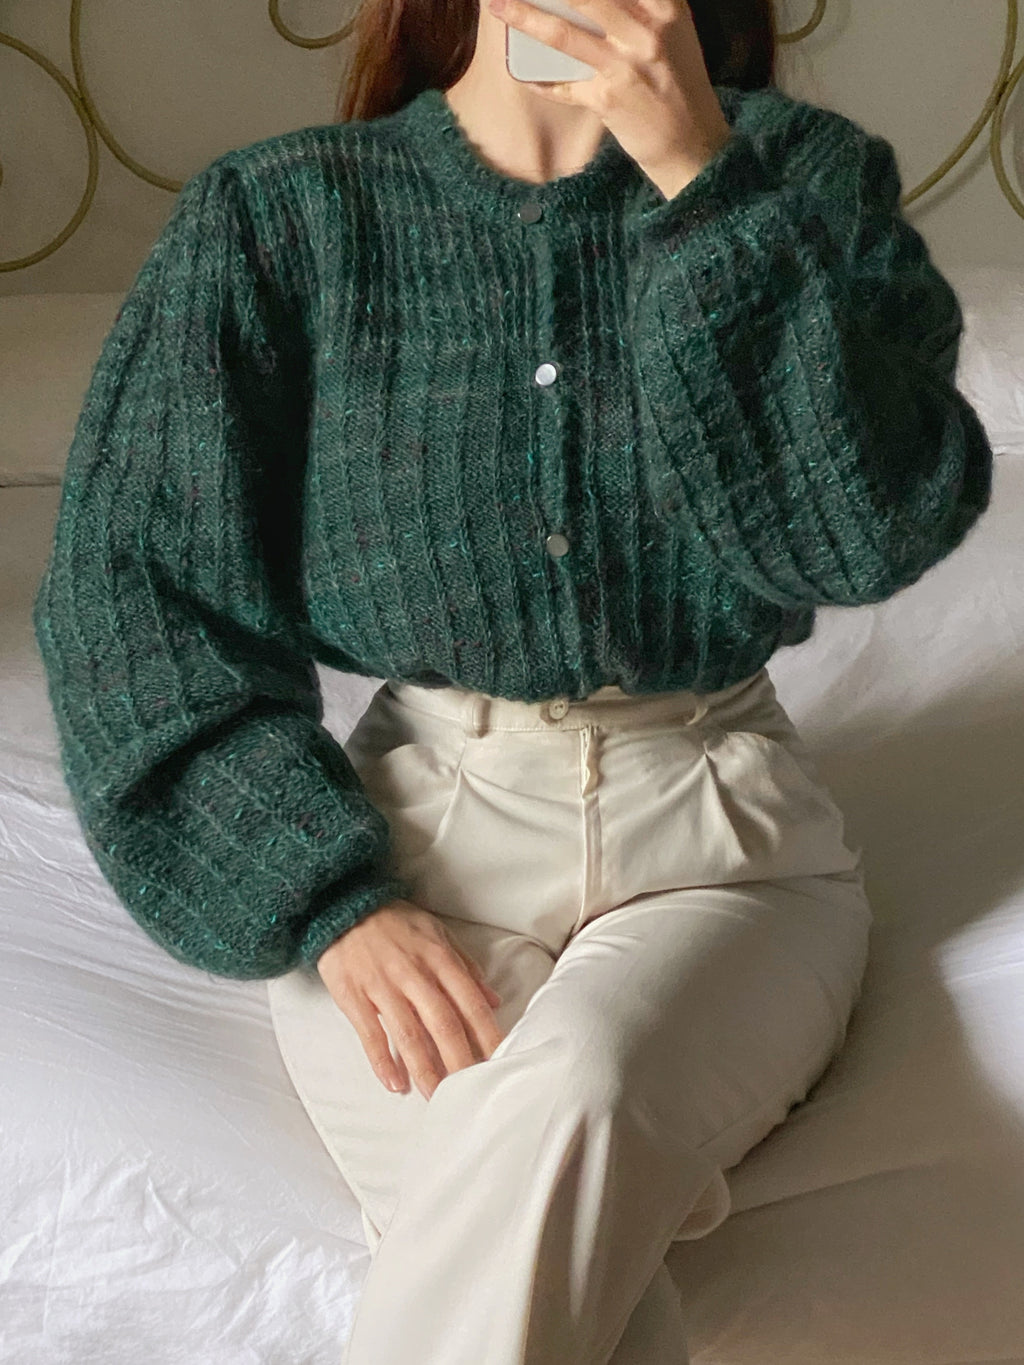 Vintage pure wool puff sleeve knitted cardigan